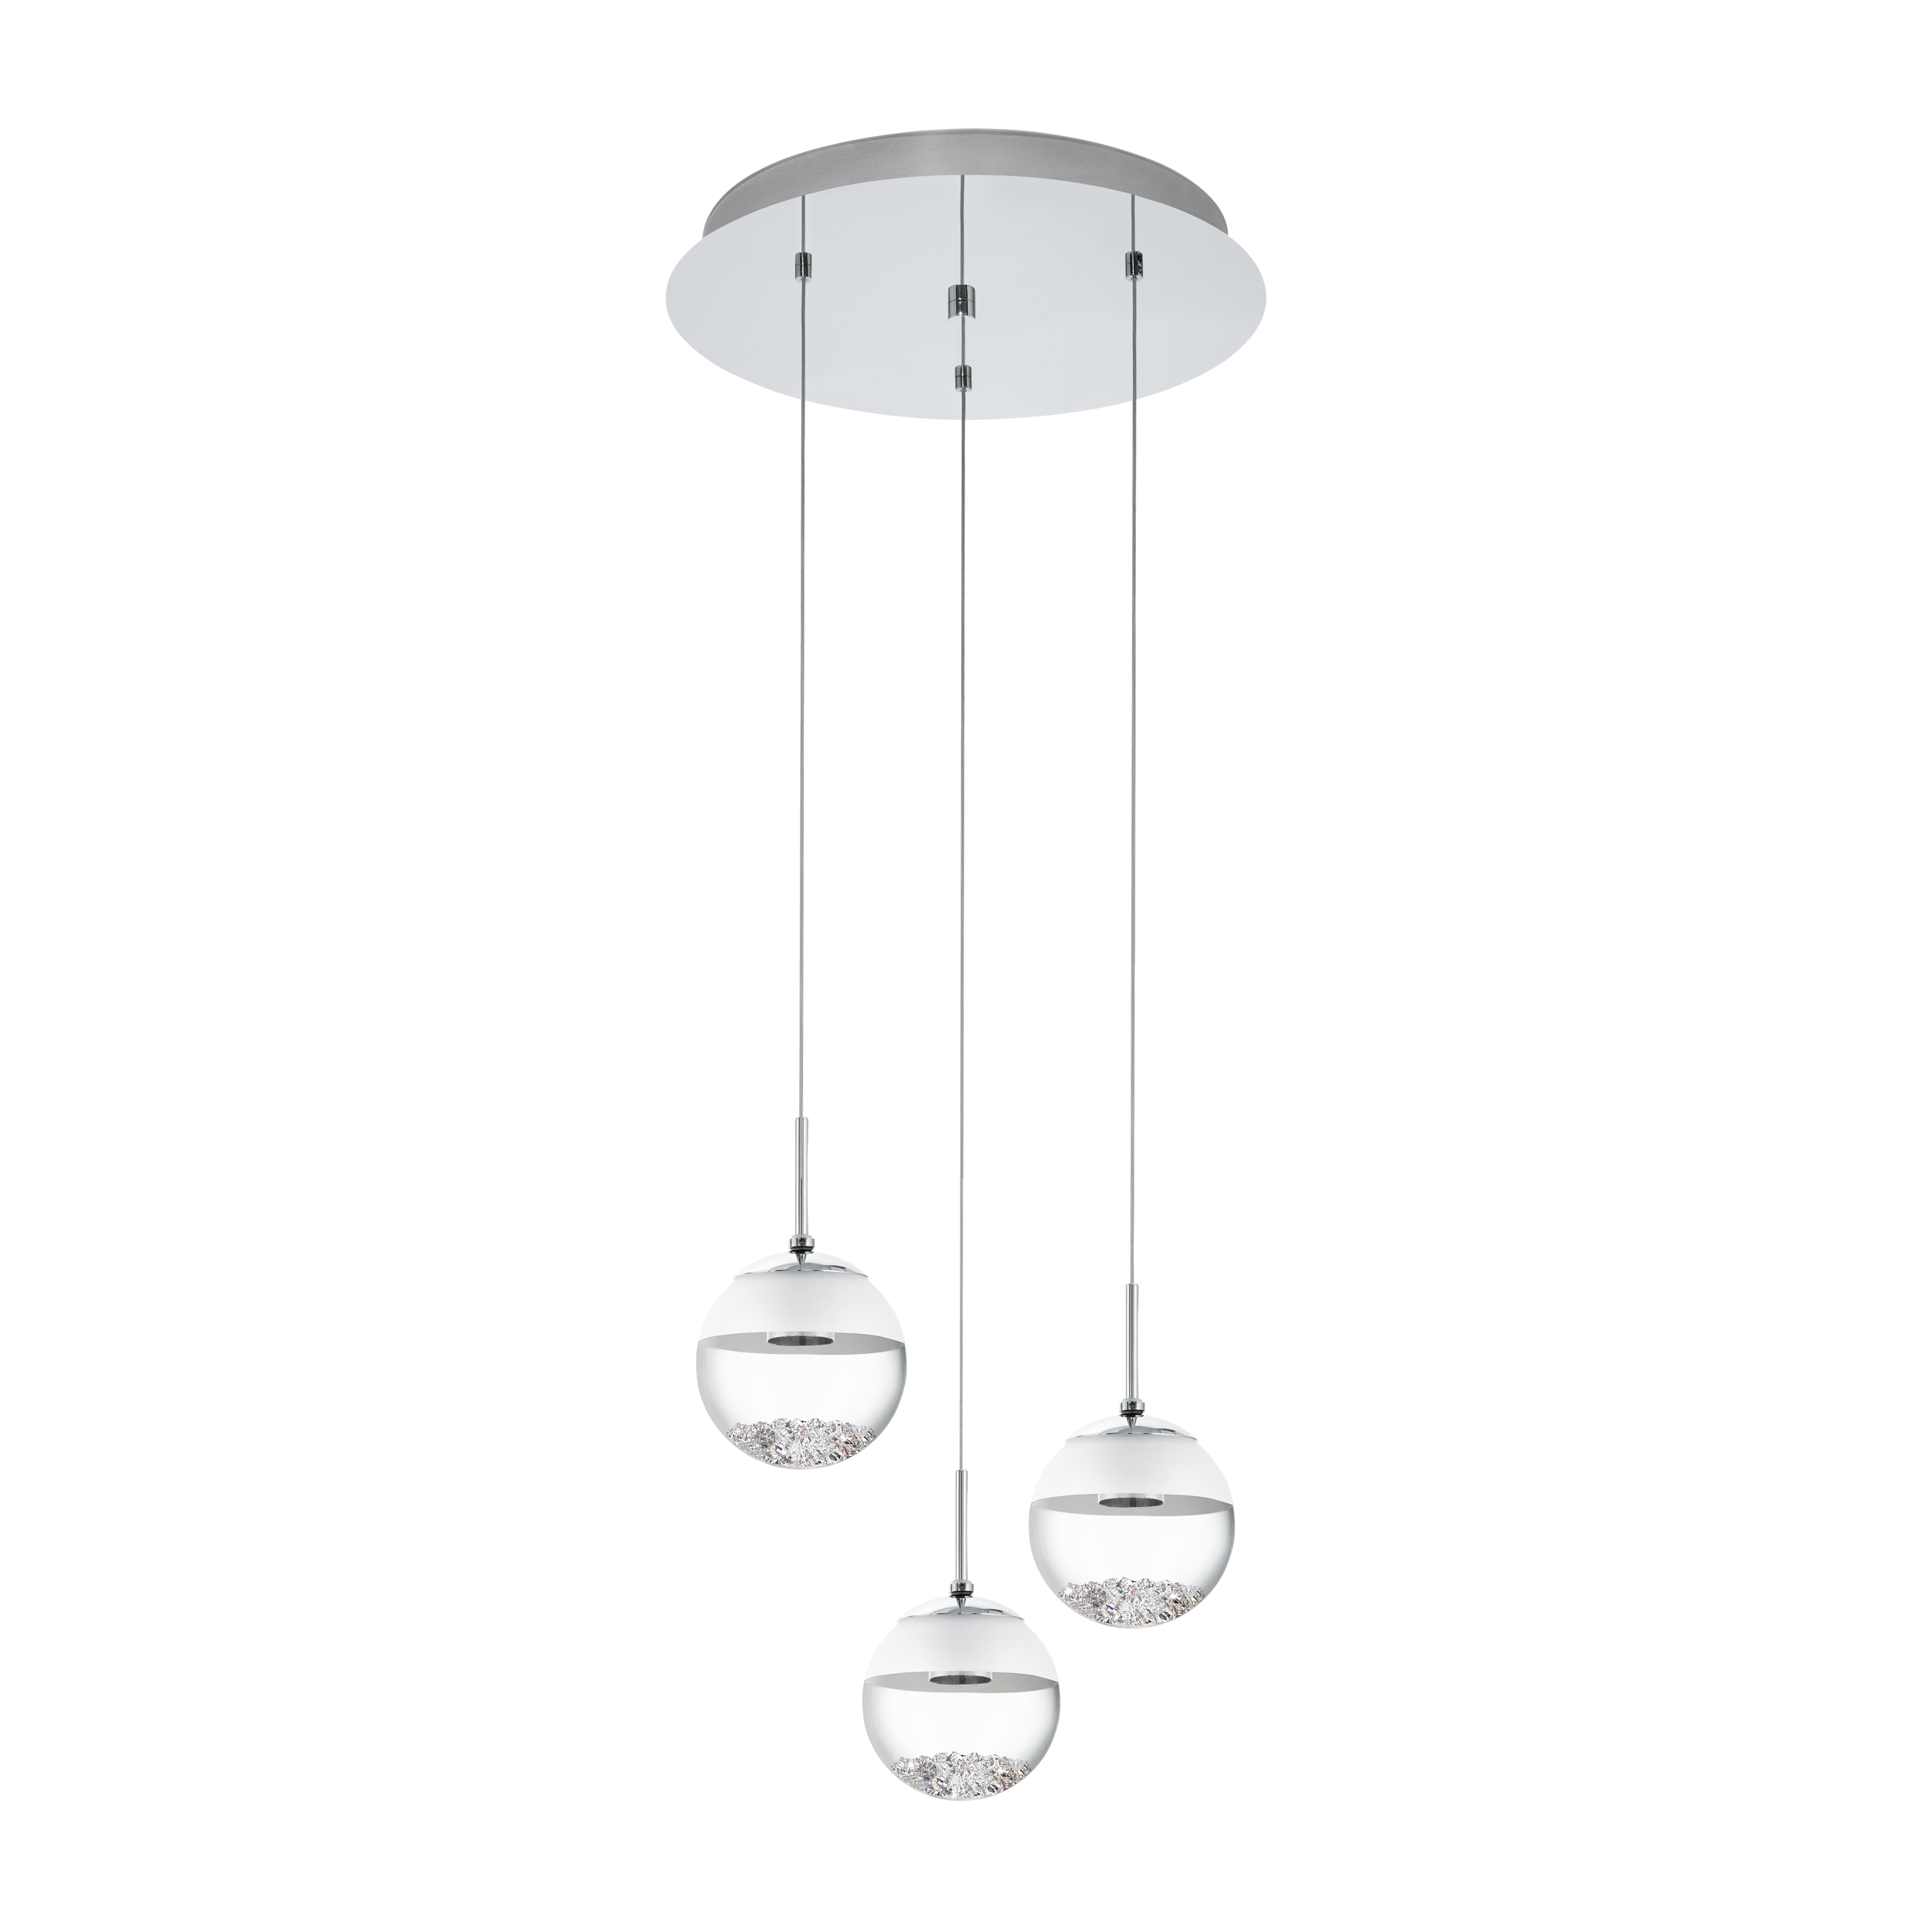 93709 Montefio 1 Interior Lighting Main Collections Products Eglo Lights International